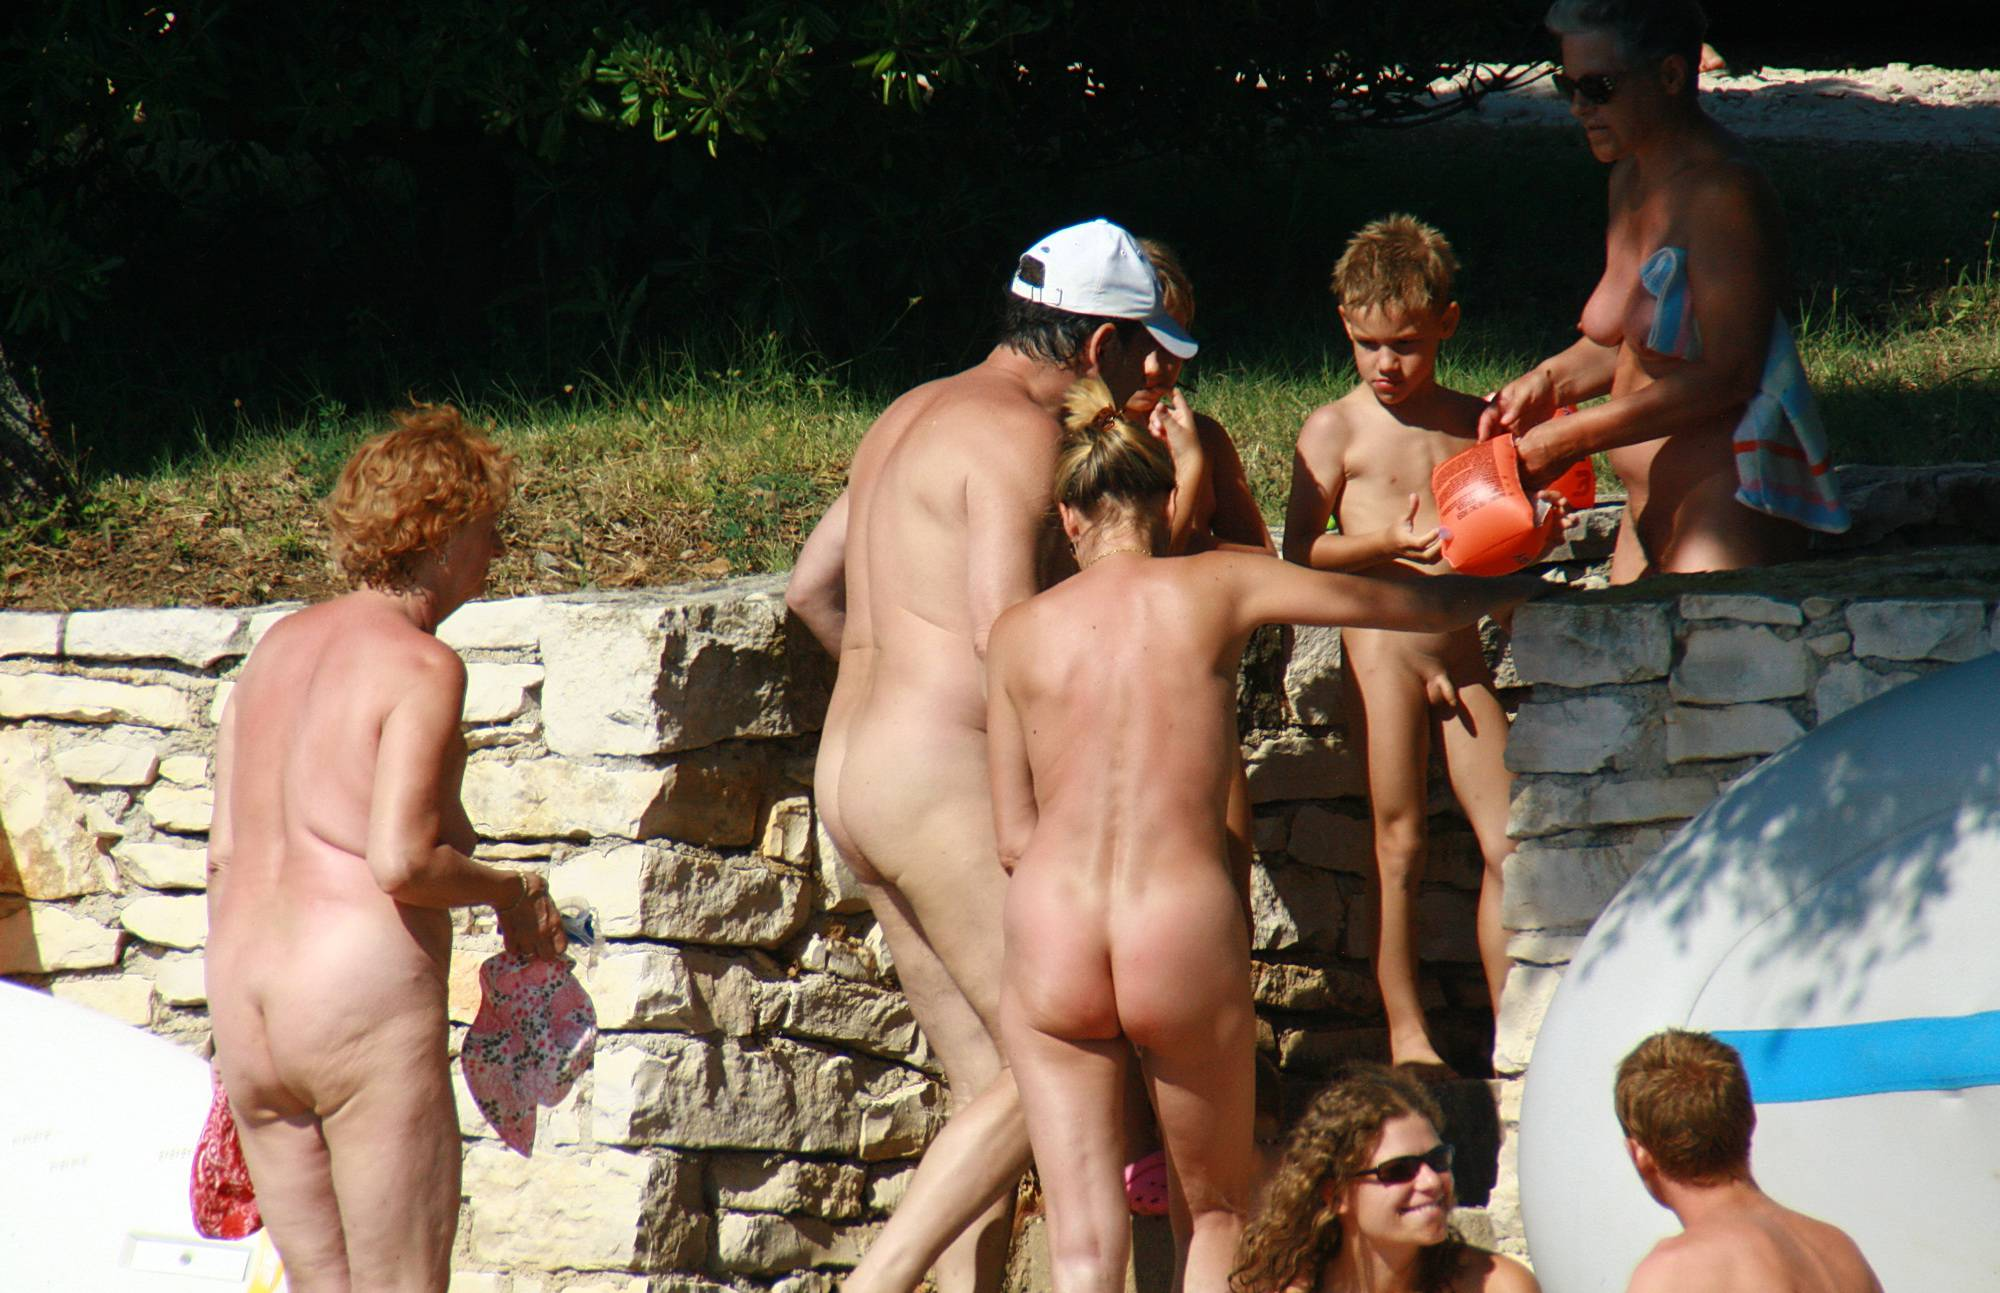 Pure Nudism Images Pleasant Day At The Park - 1